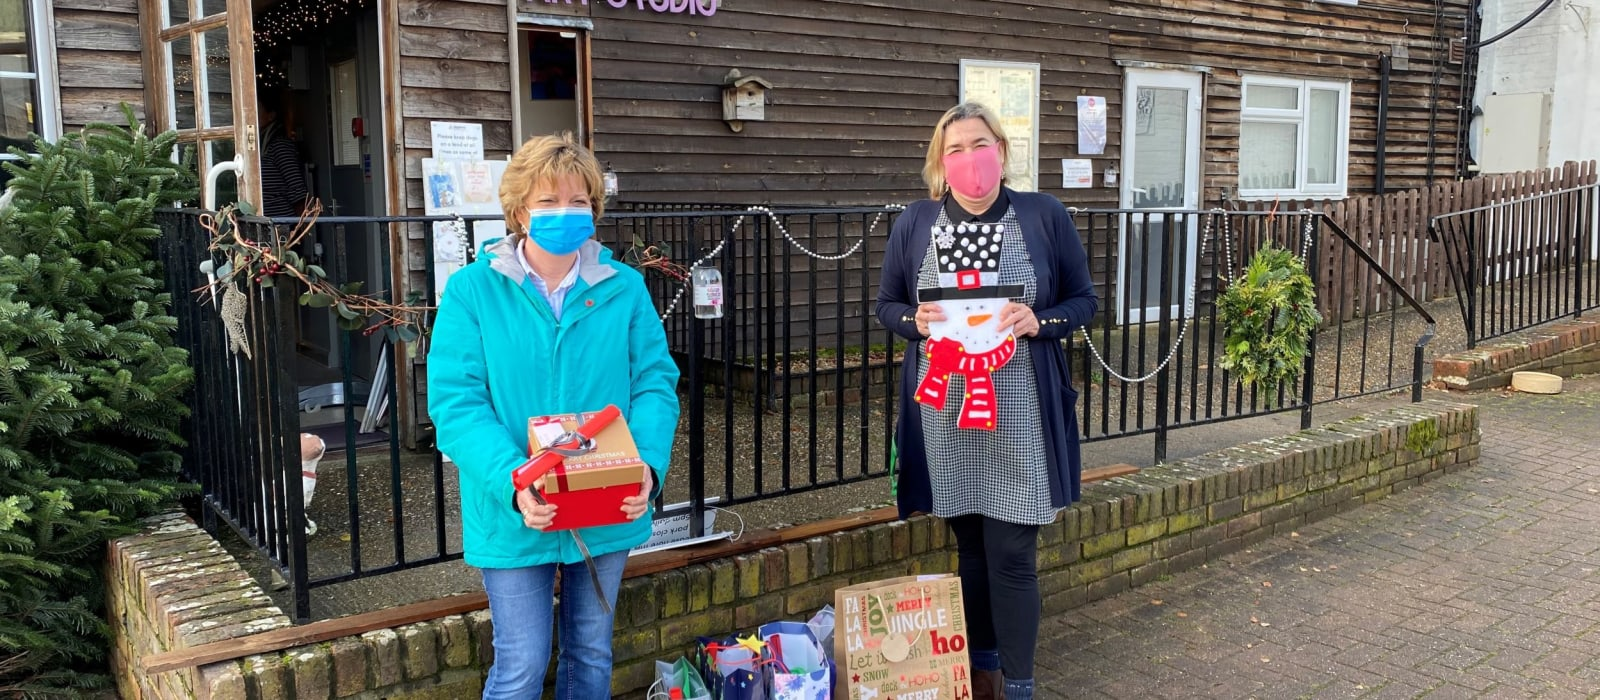 Students' 'Hug-in-a-Bag' Gifts Raise Festive Cheer